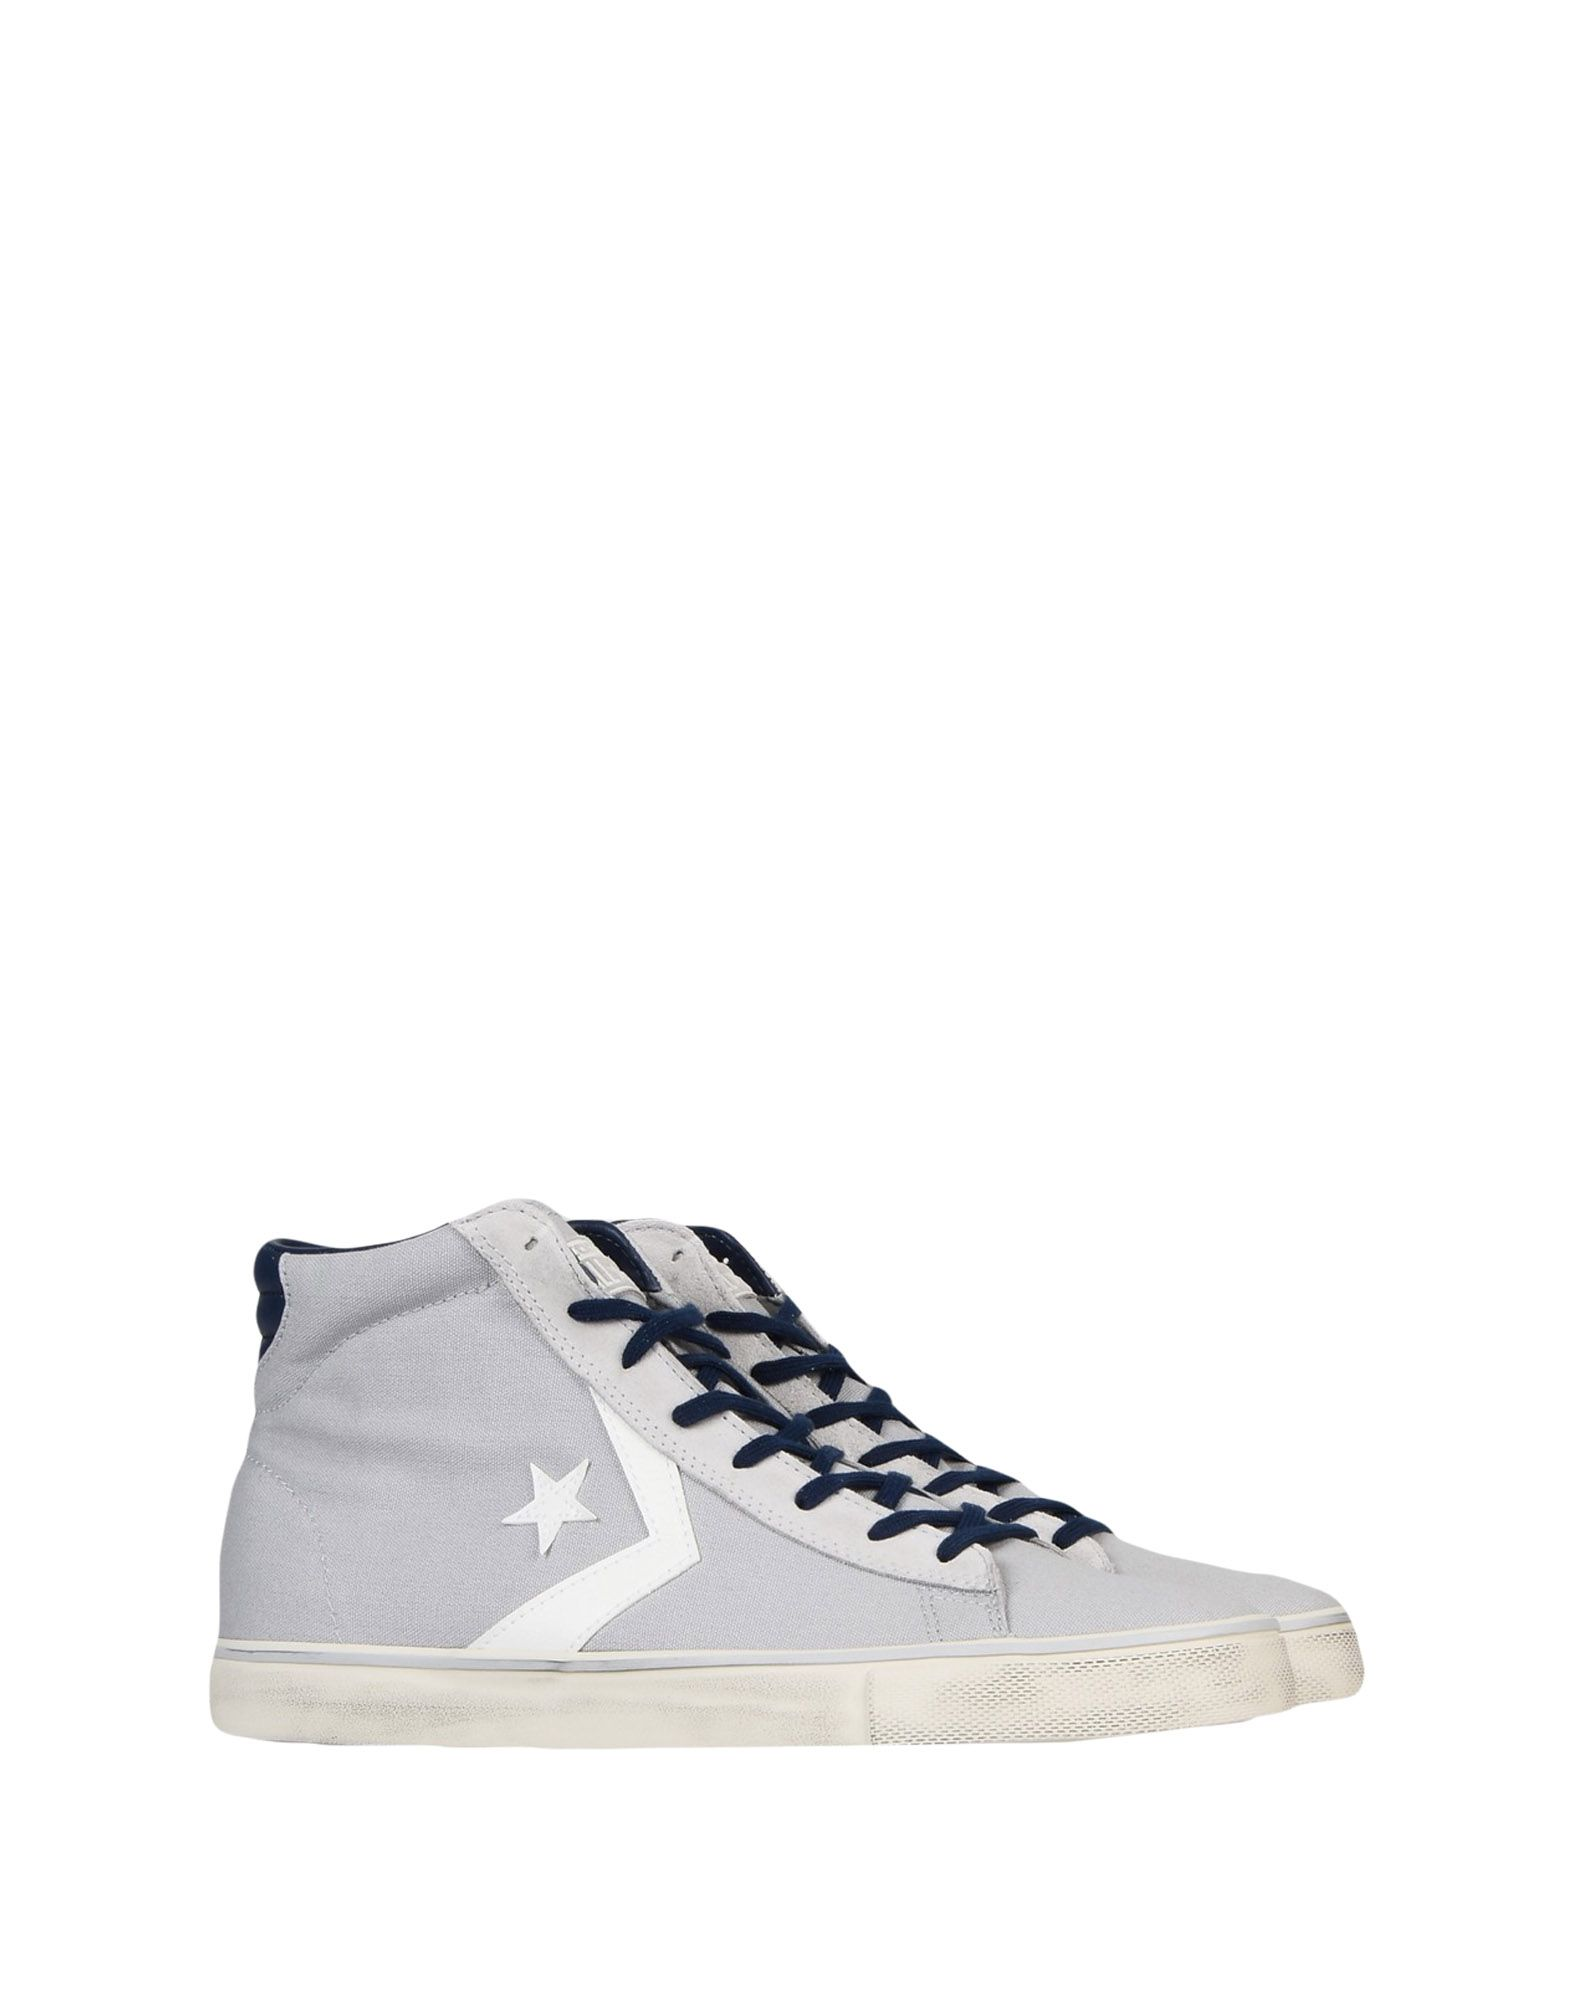 Sneakers Converse Cons Pro Leather Vulc Mid Canvas Distressed - Homme - Sneakers Converse Cons sur